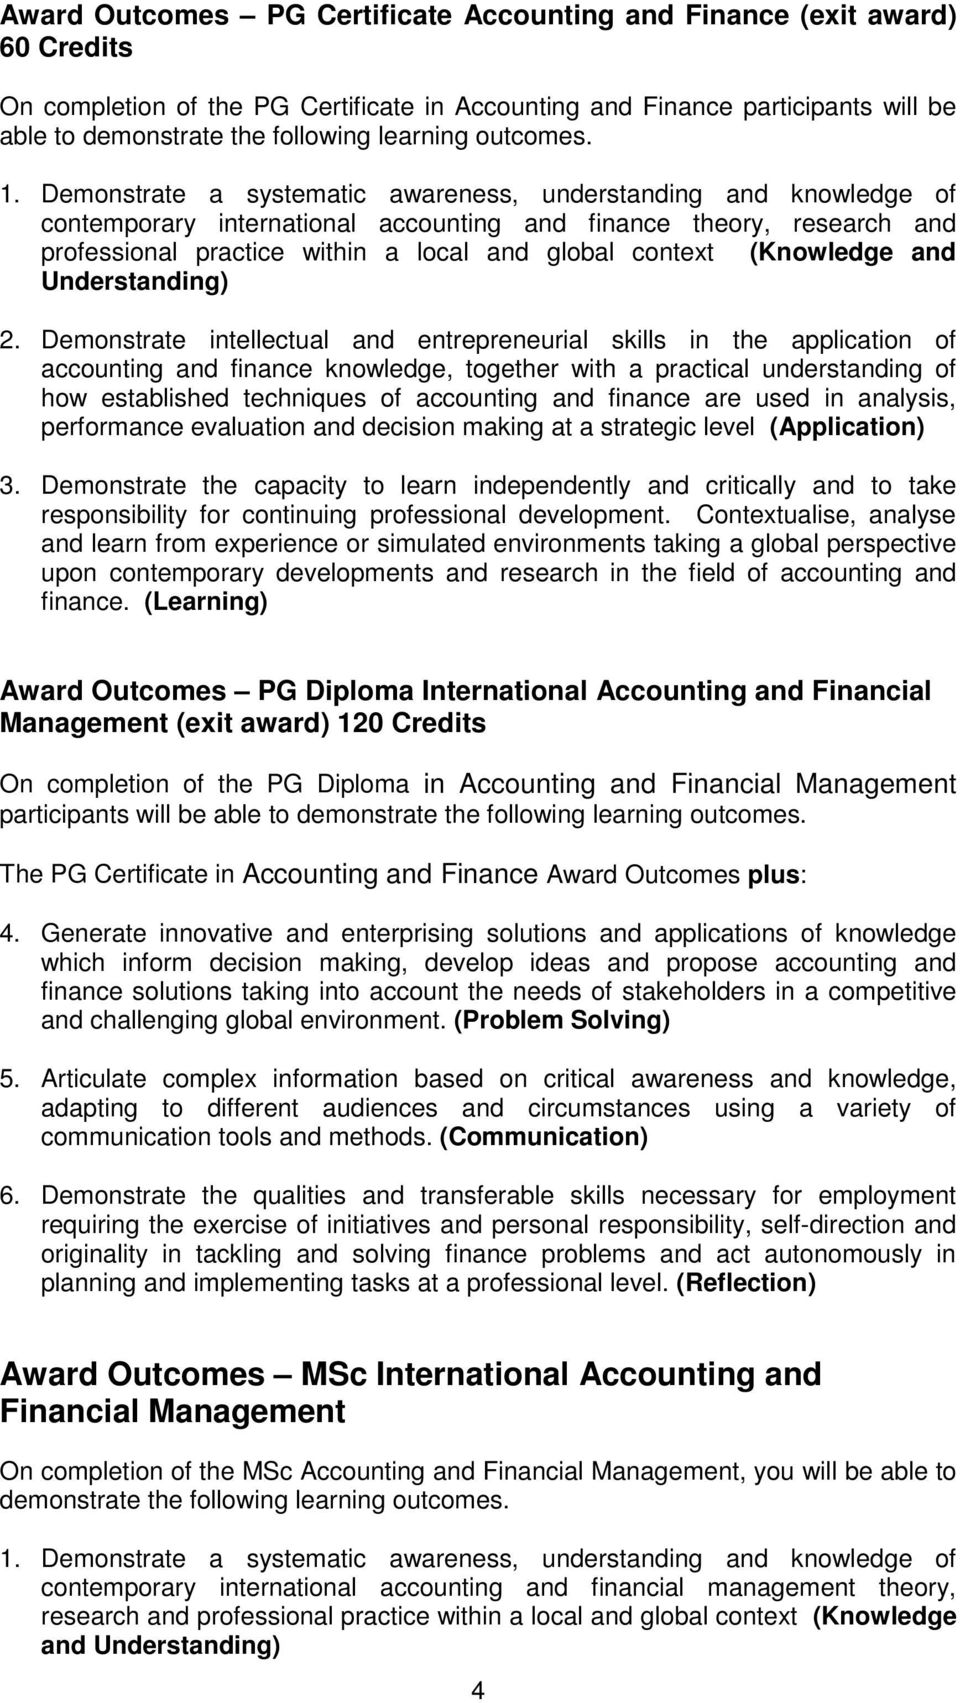 Demonstrate a systematic awareness, understanding and knowledge of contemporary international accounting and finance theory, research and professional practice within a local and global context